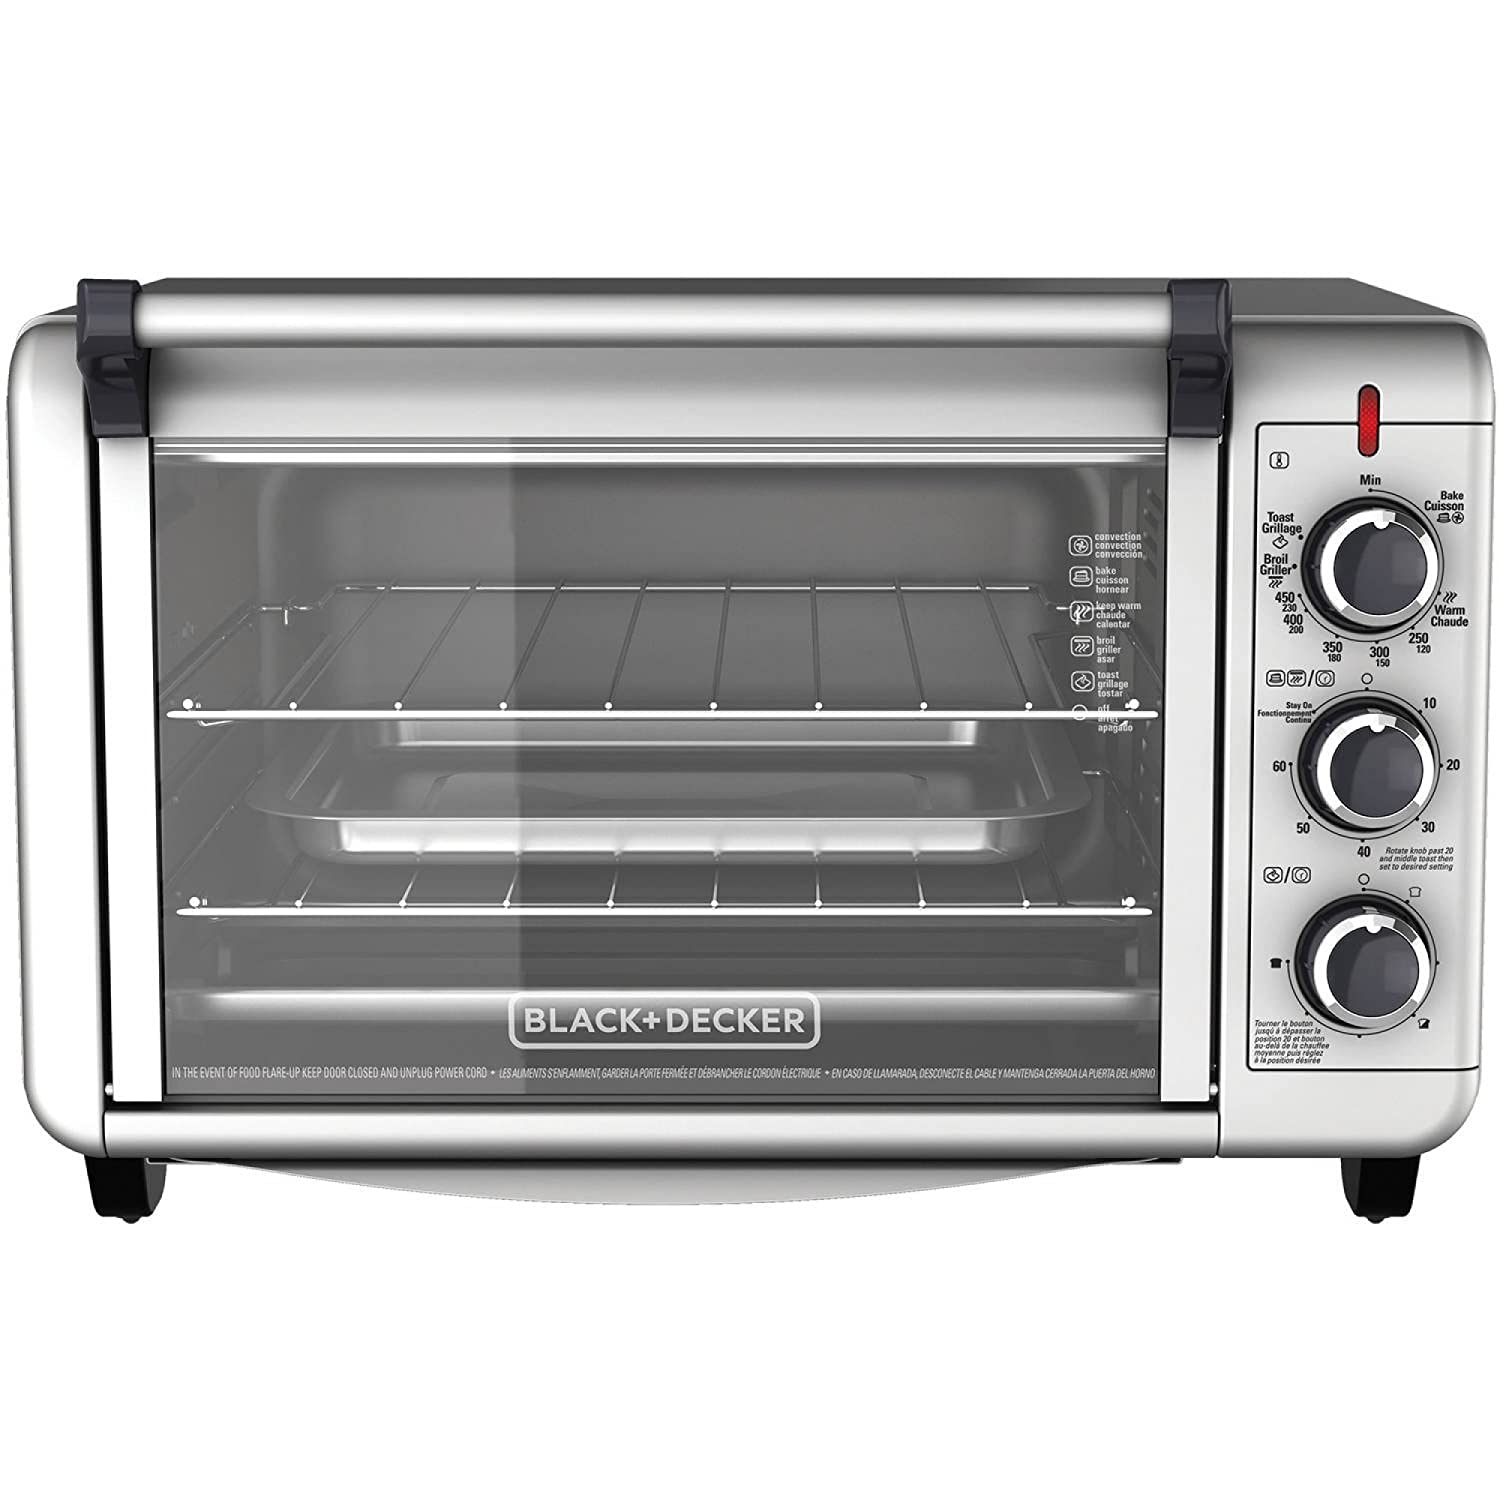 Amazon Black Decker Countertop Convection Toaster Oven with